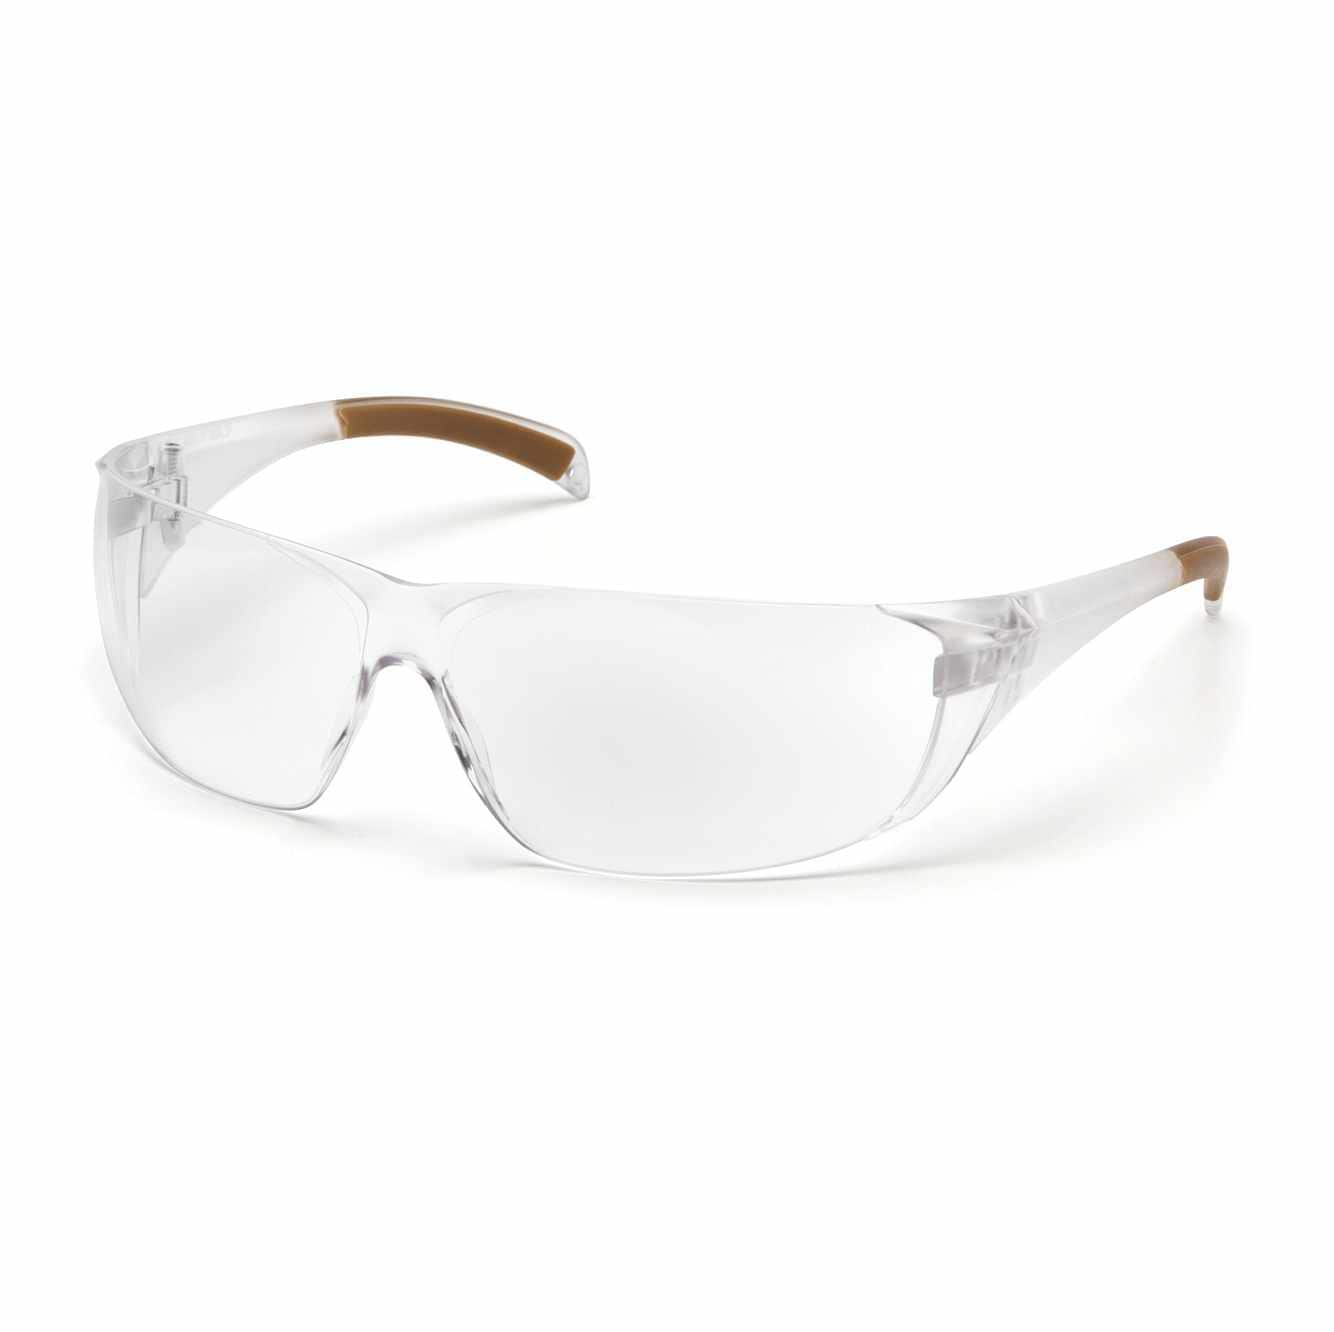 Picture of Billings Anti-Fog Safety Glasses in Clear